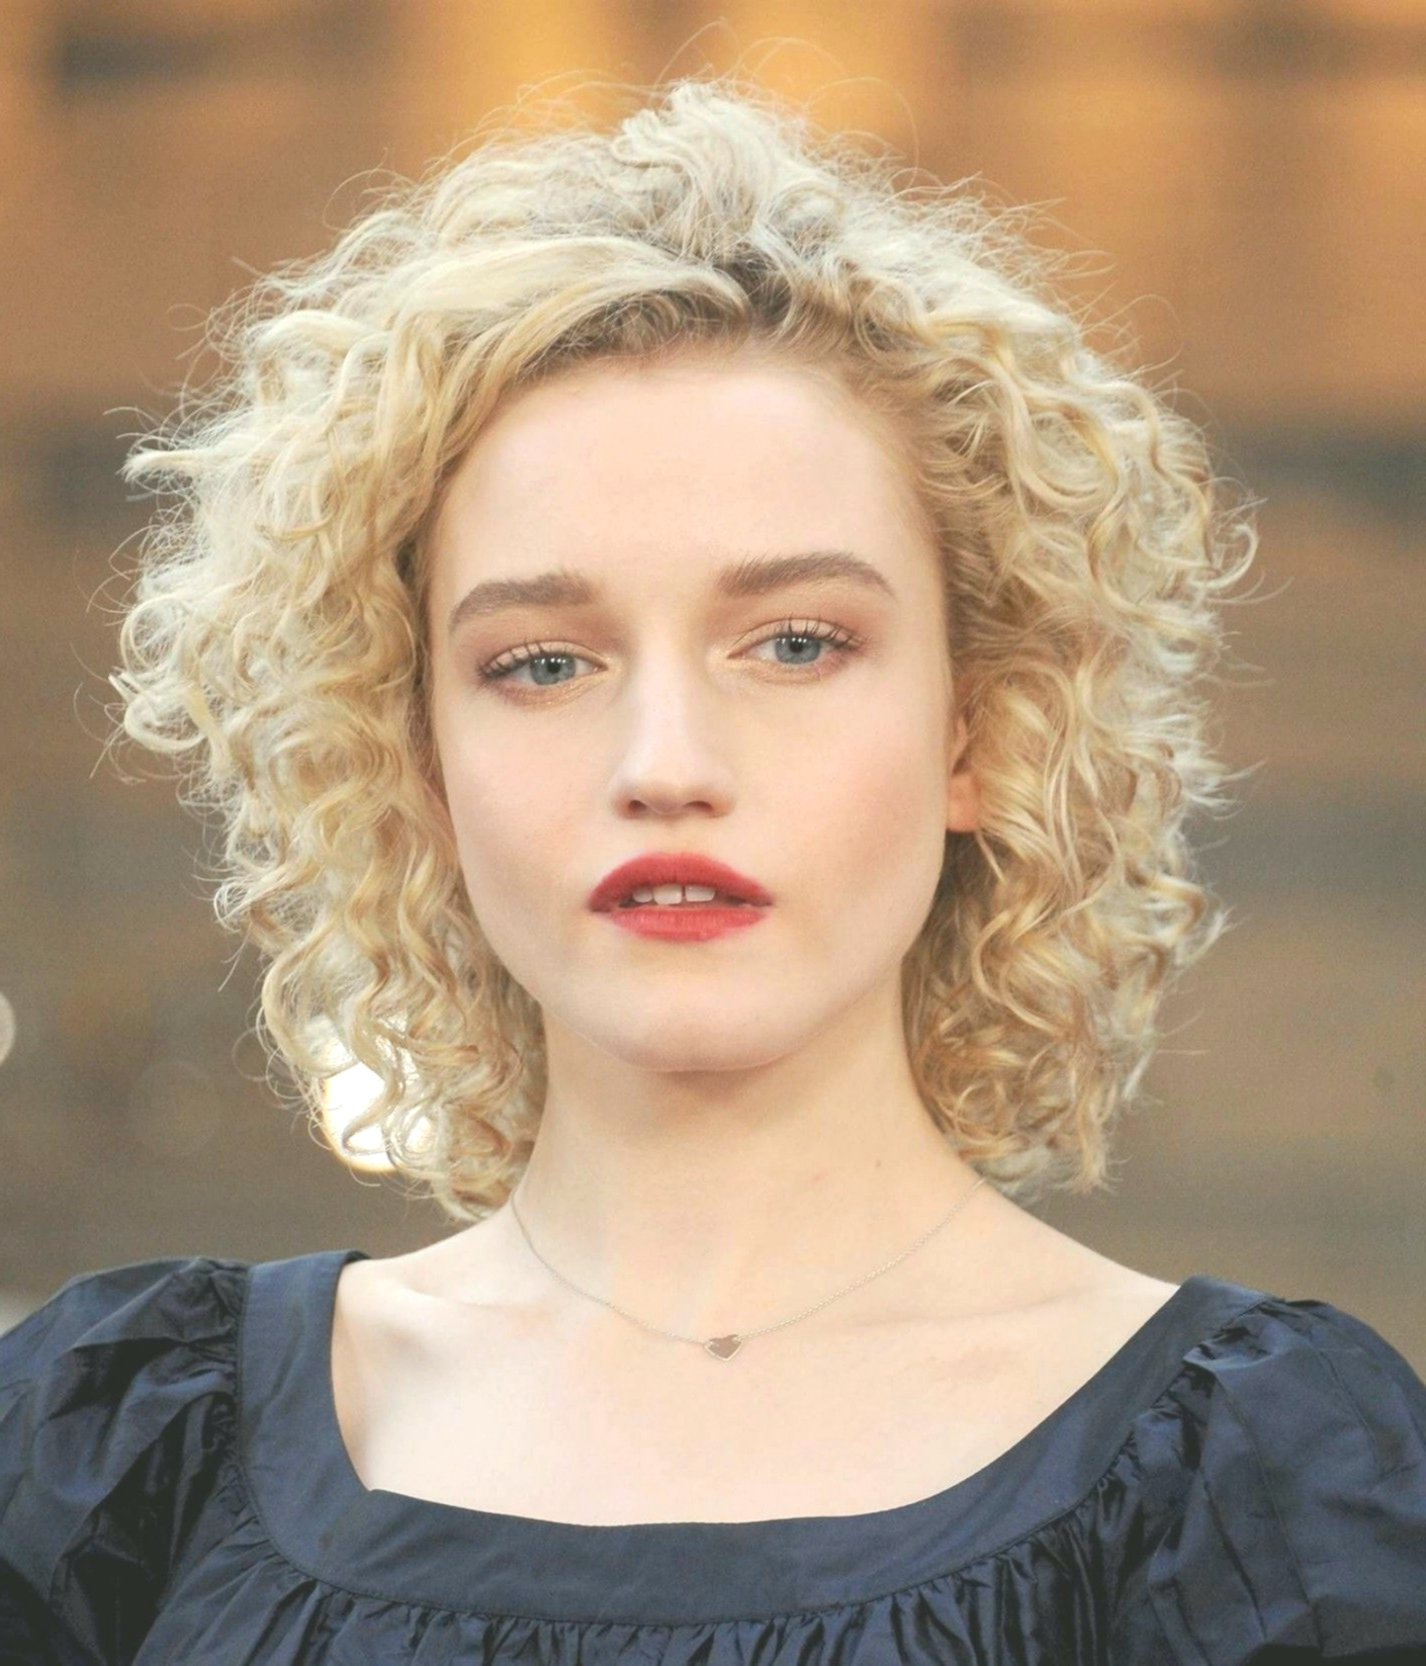 terribly cool beautiful hairstyles for short hair gallery-Modern Beautiful Hairstyles For Short Hair Decor